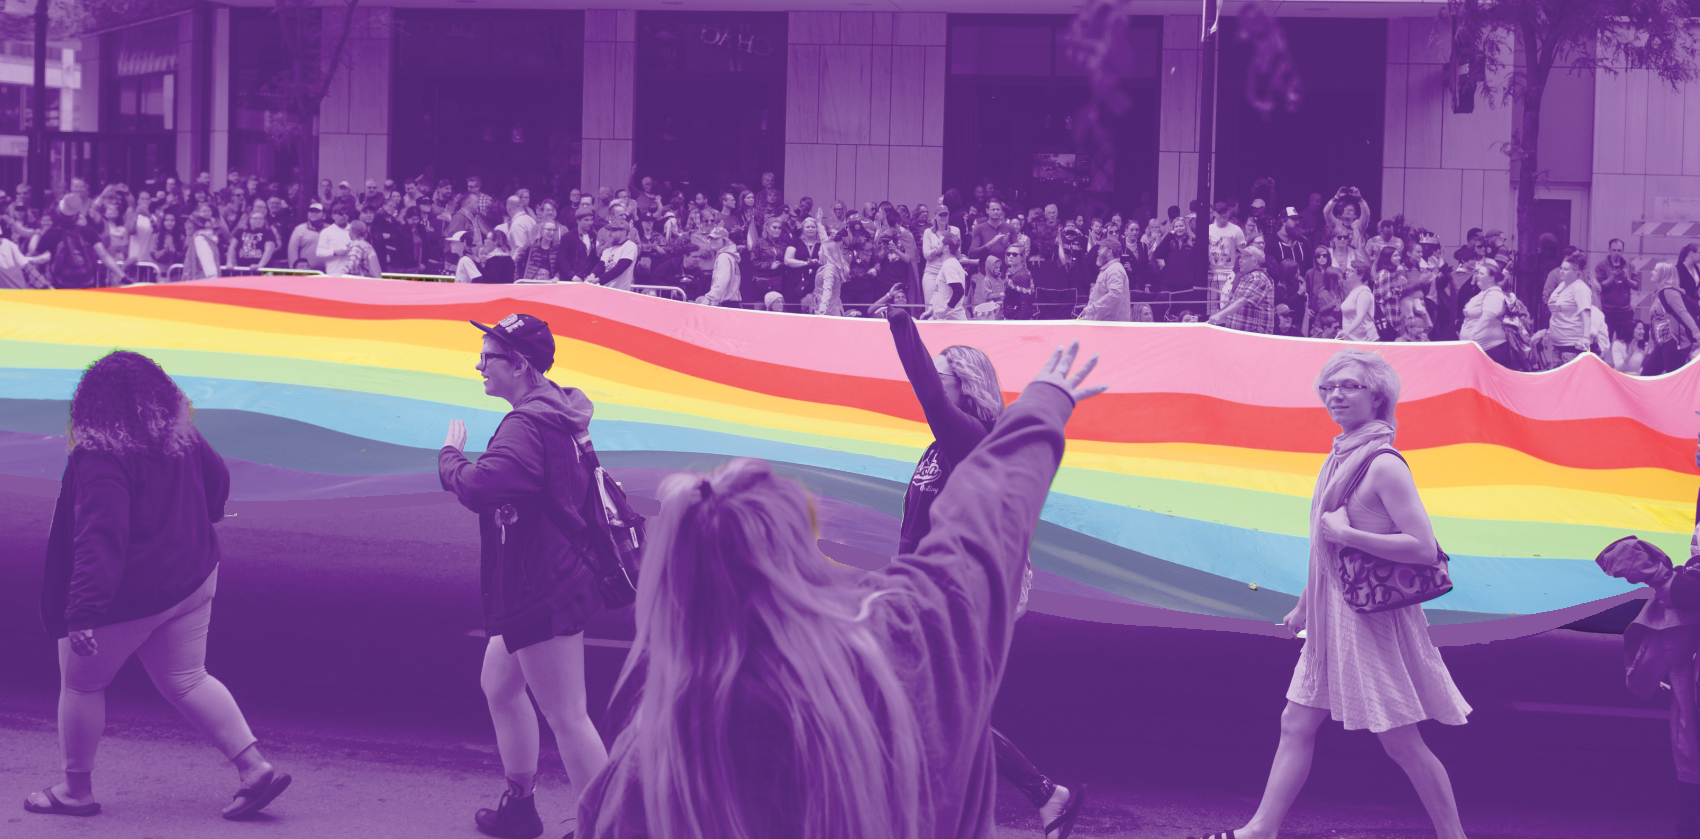 Give OUT Day - Pride Parade, rainbow banner and people walking